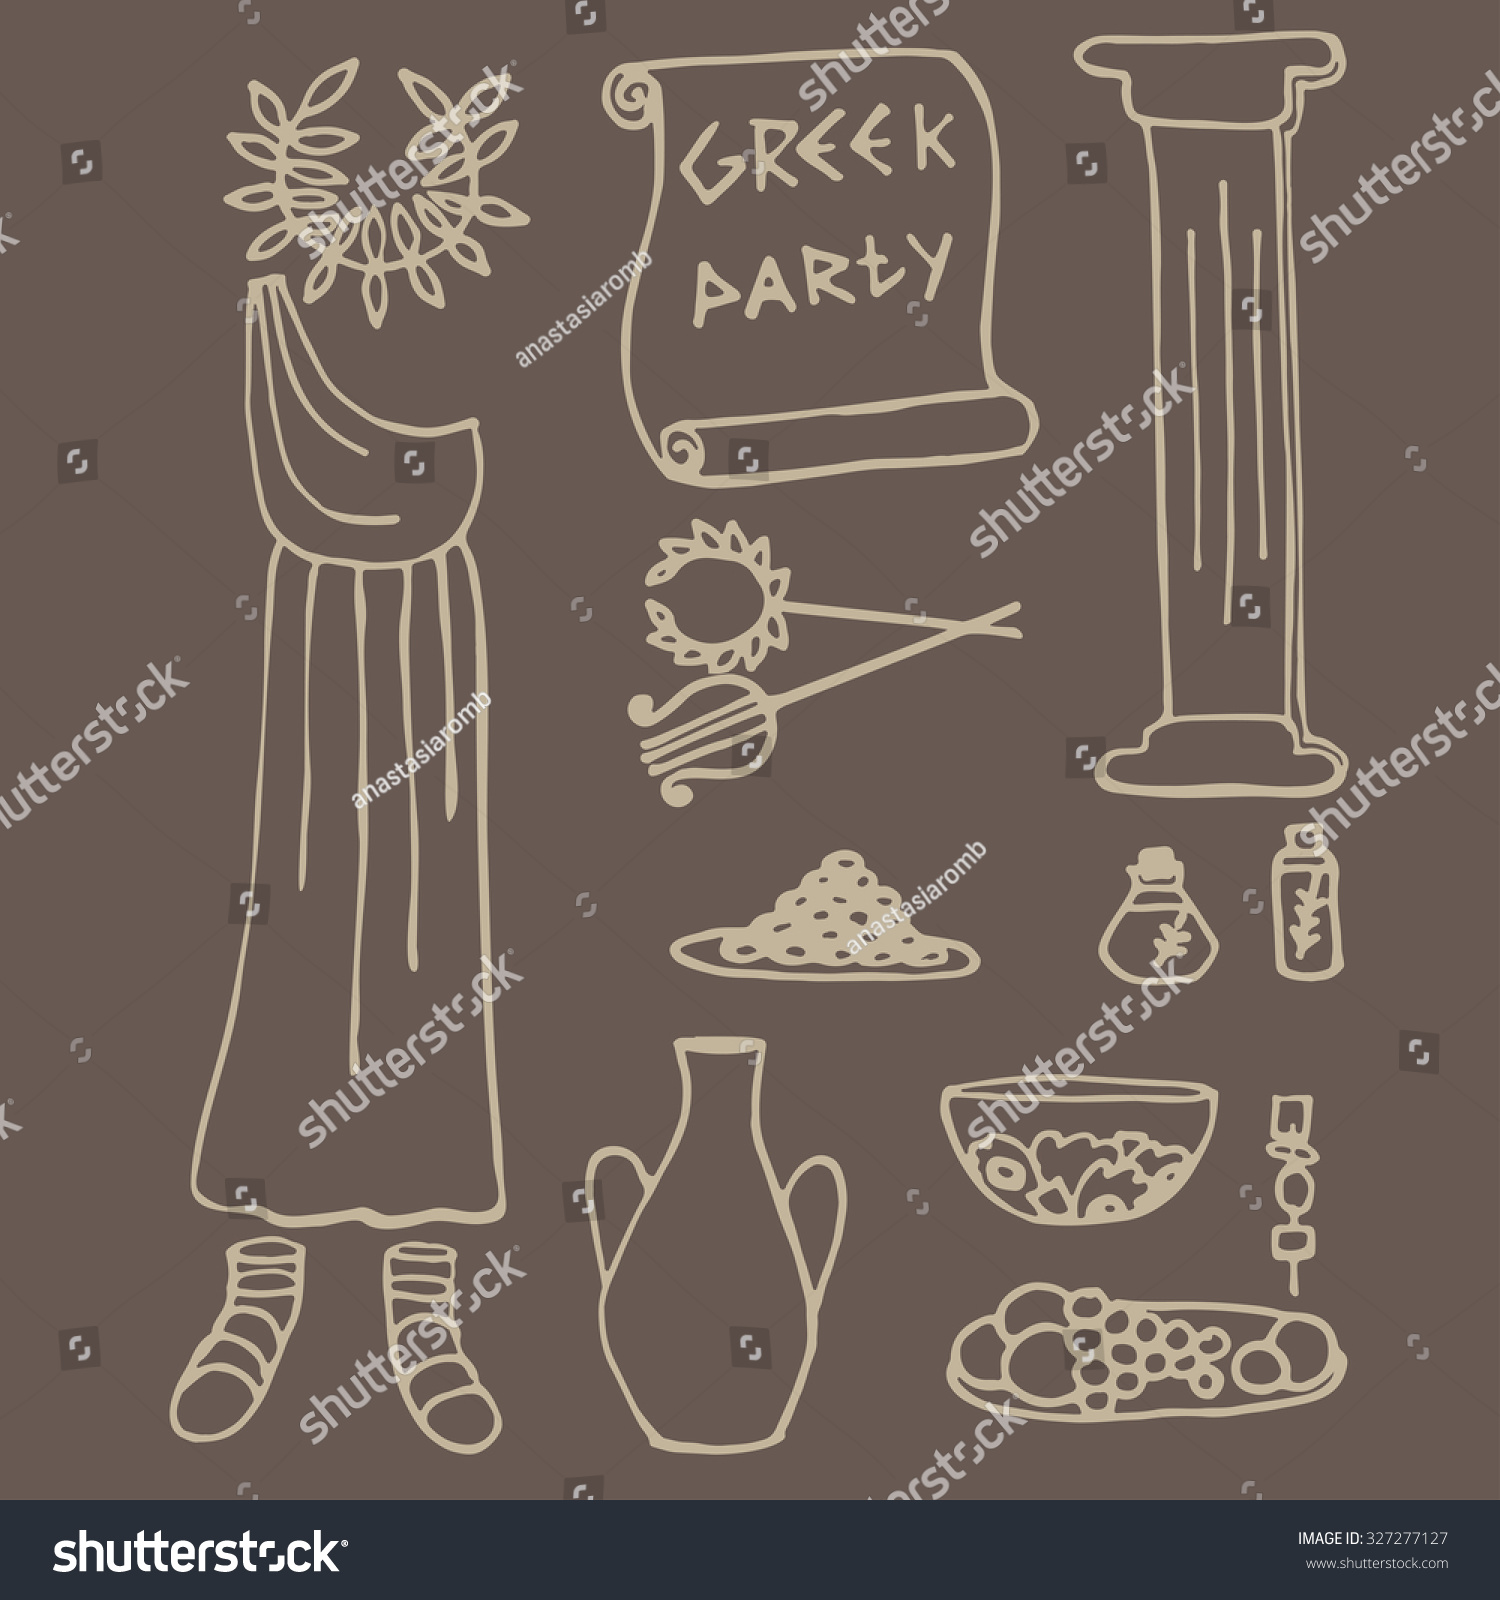 Doodle set ancient greek party ideas stock vector for Ancient greek decoration